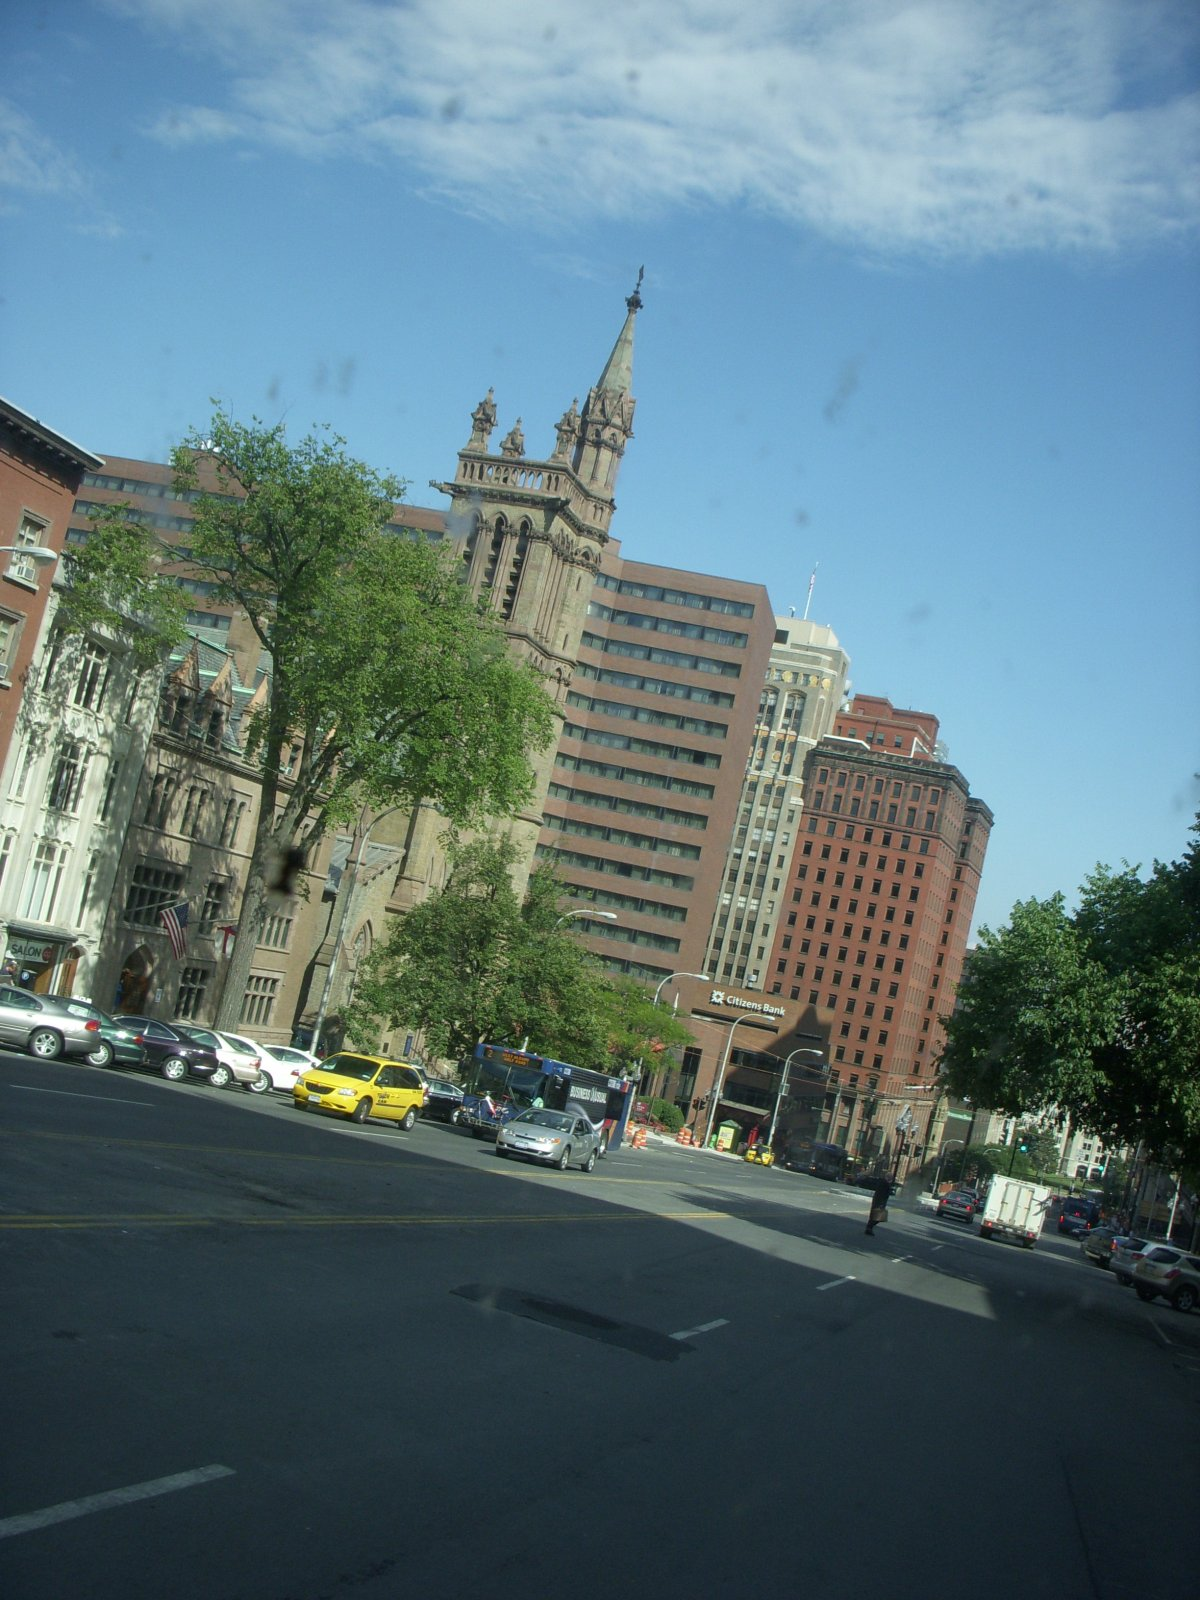 Click image for larger version  Name:Mass. Conn, Penn, Aug 2011 022.jpg Views:72 Size:310.7 KB ID:137558